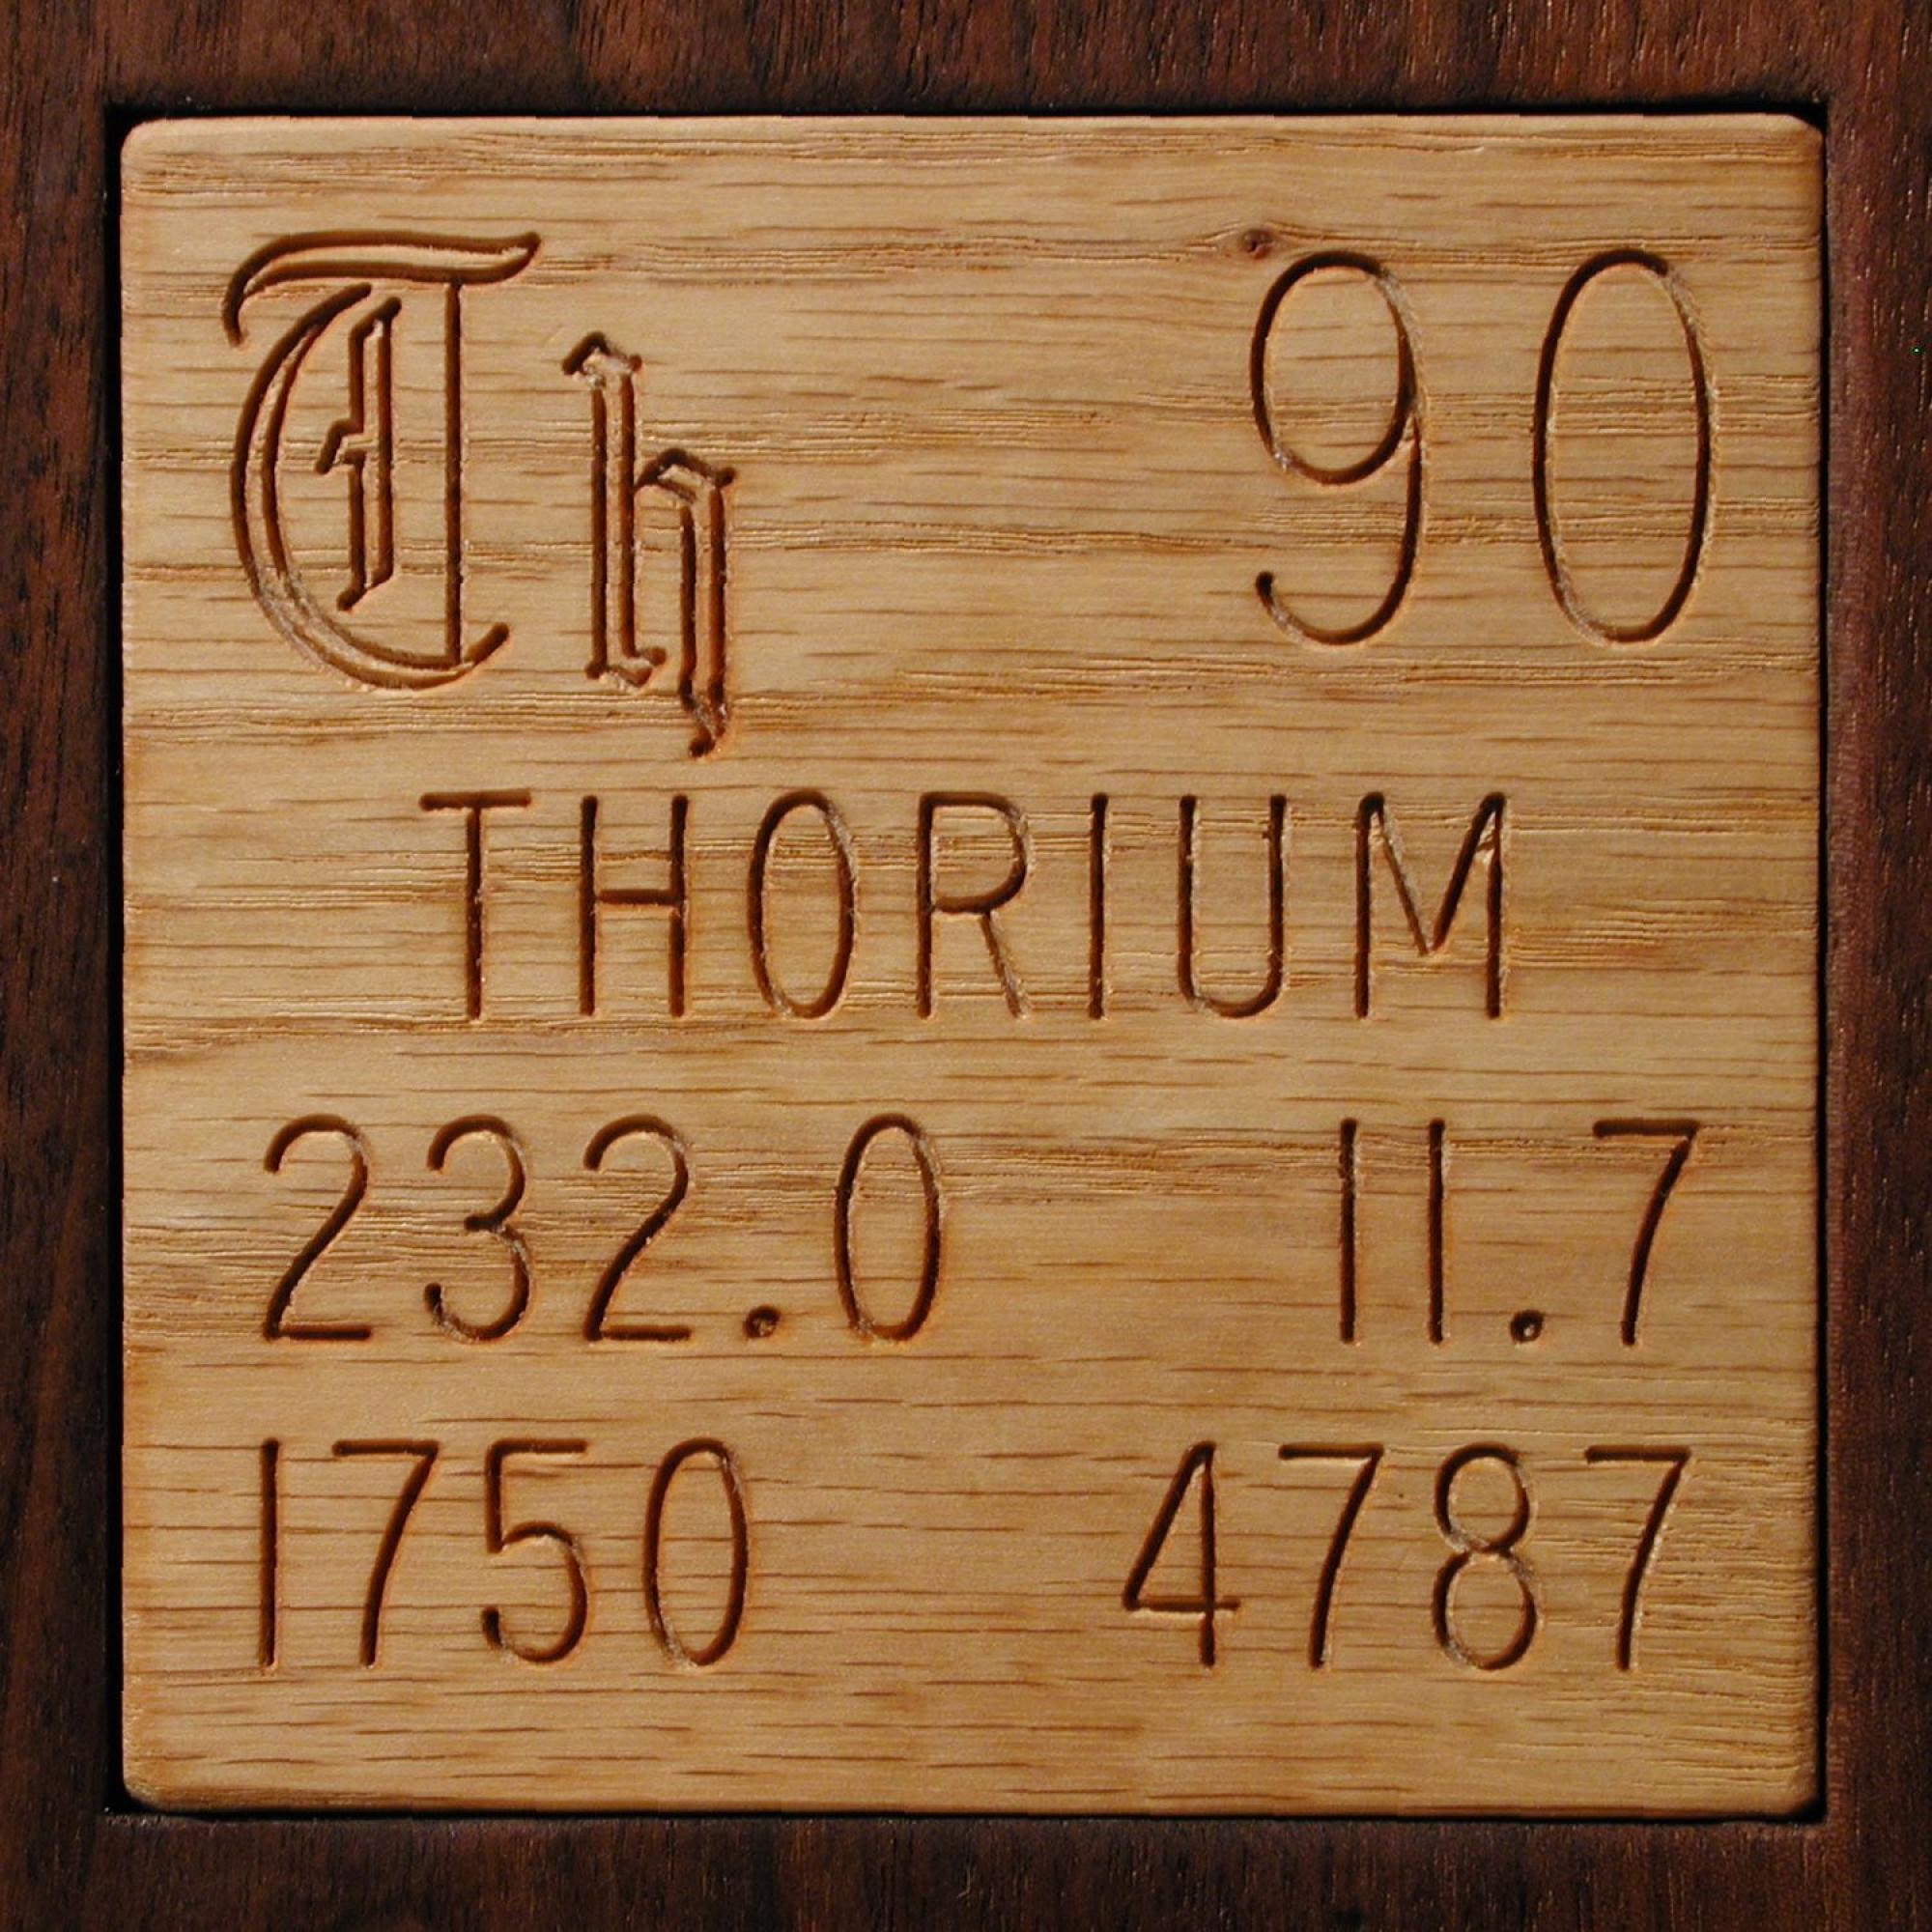 Facts Pictures Stories About The Element Thorium In The Periodic Table